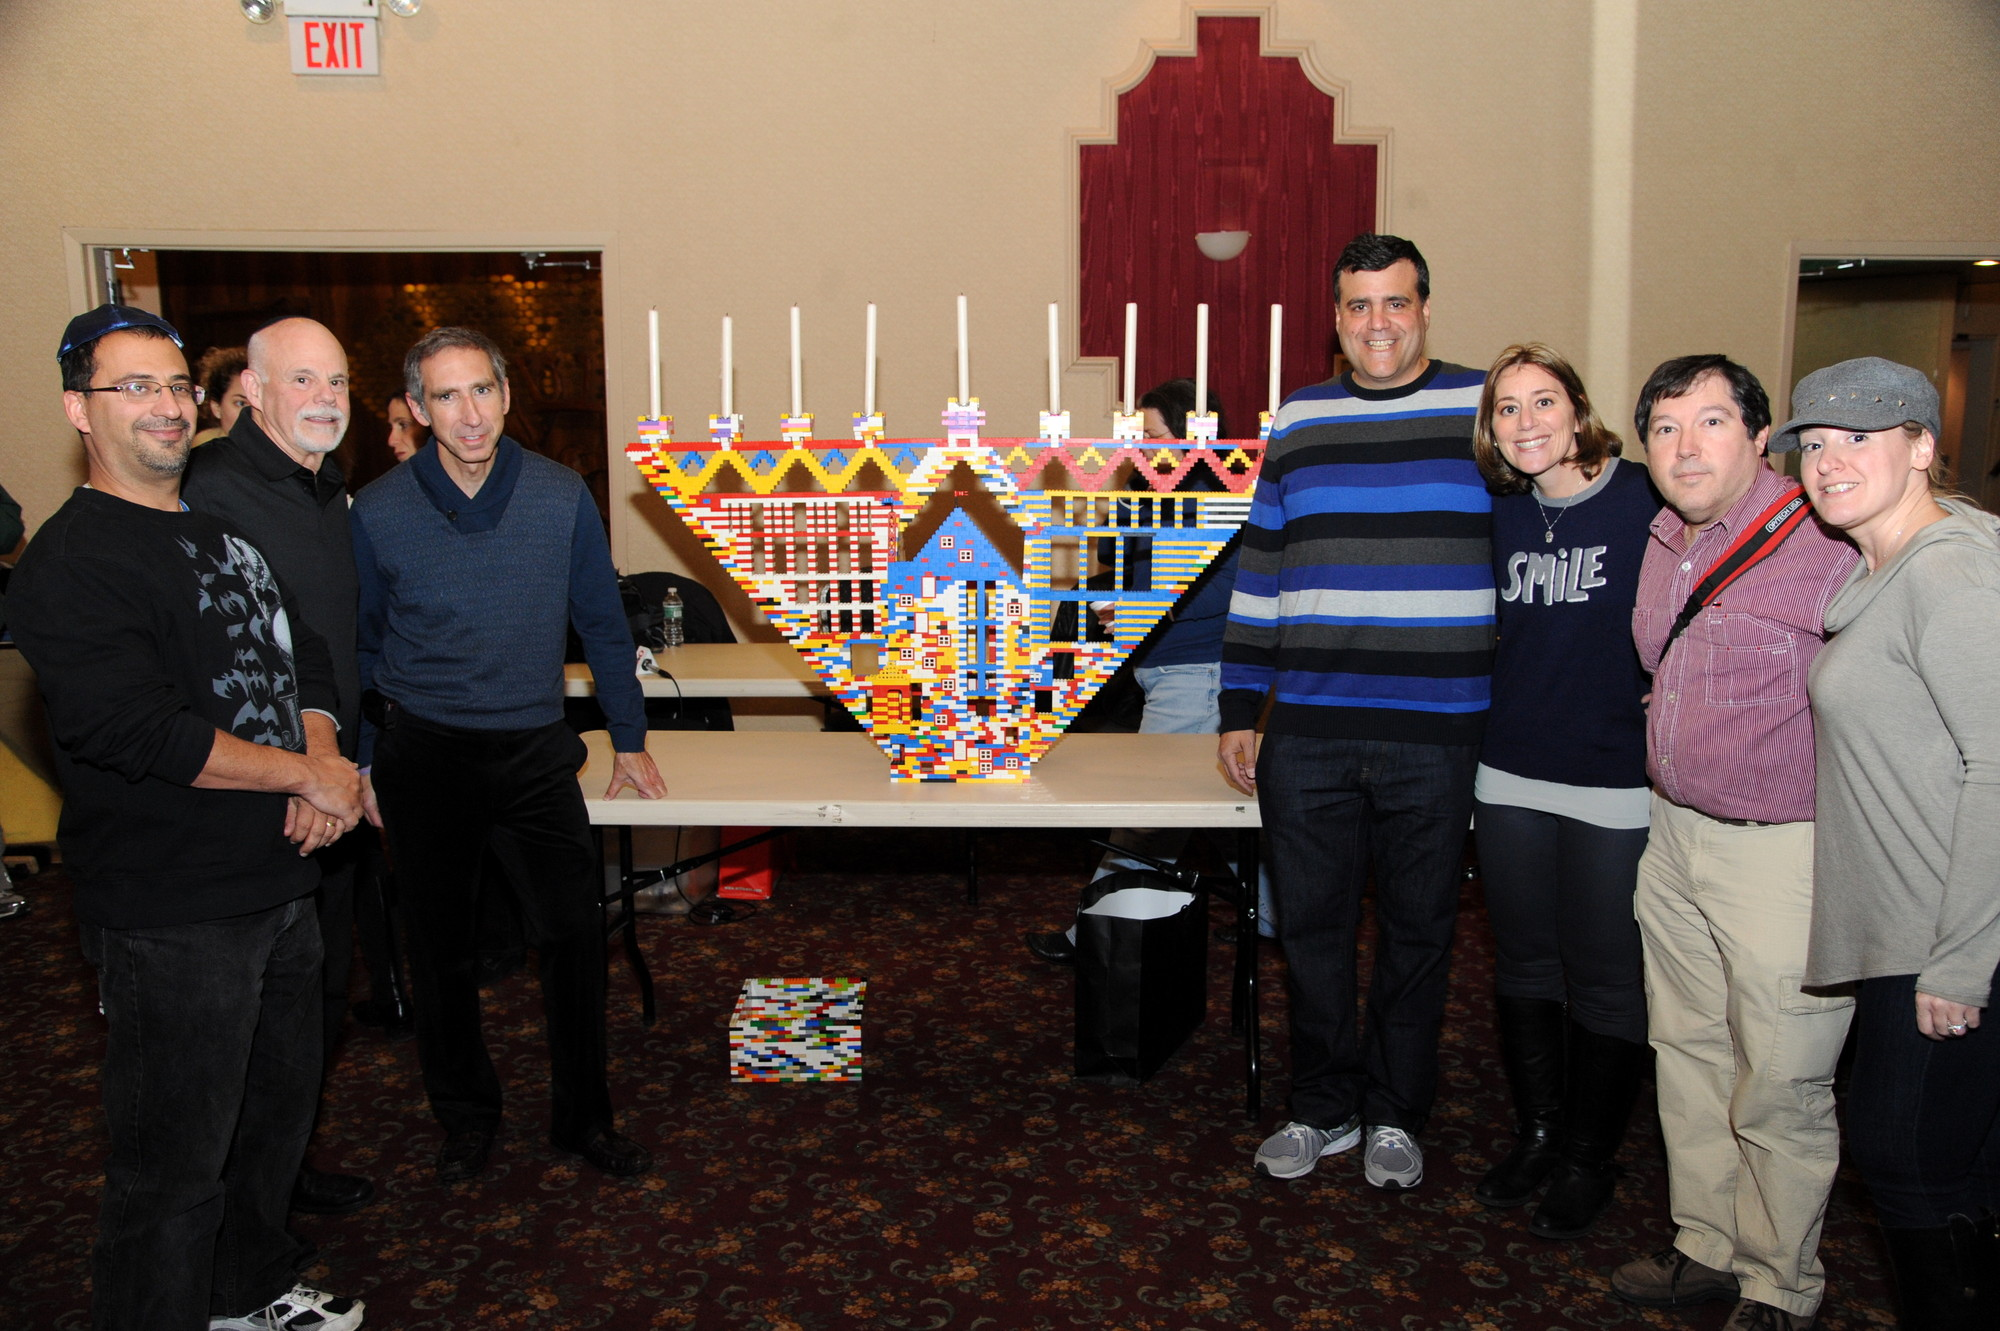 Peter Bloch, Stephen Schwartz, TISO Rabbi Scott Hoffman, Curtis Izen, Lori Izen, Bruce Feingold, and Ali Goldsmith stood for a photograph beside what eventually became the head of a giant LEGO menorah.